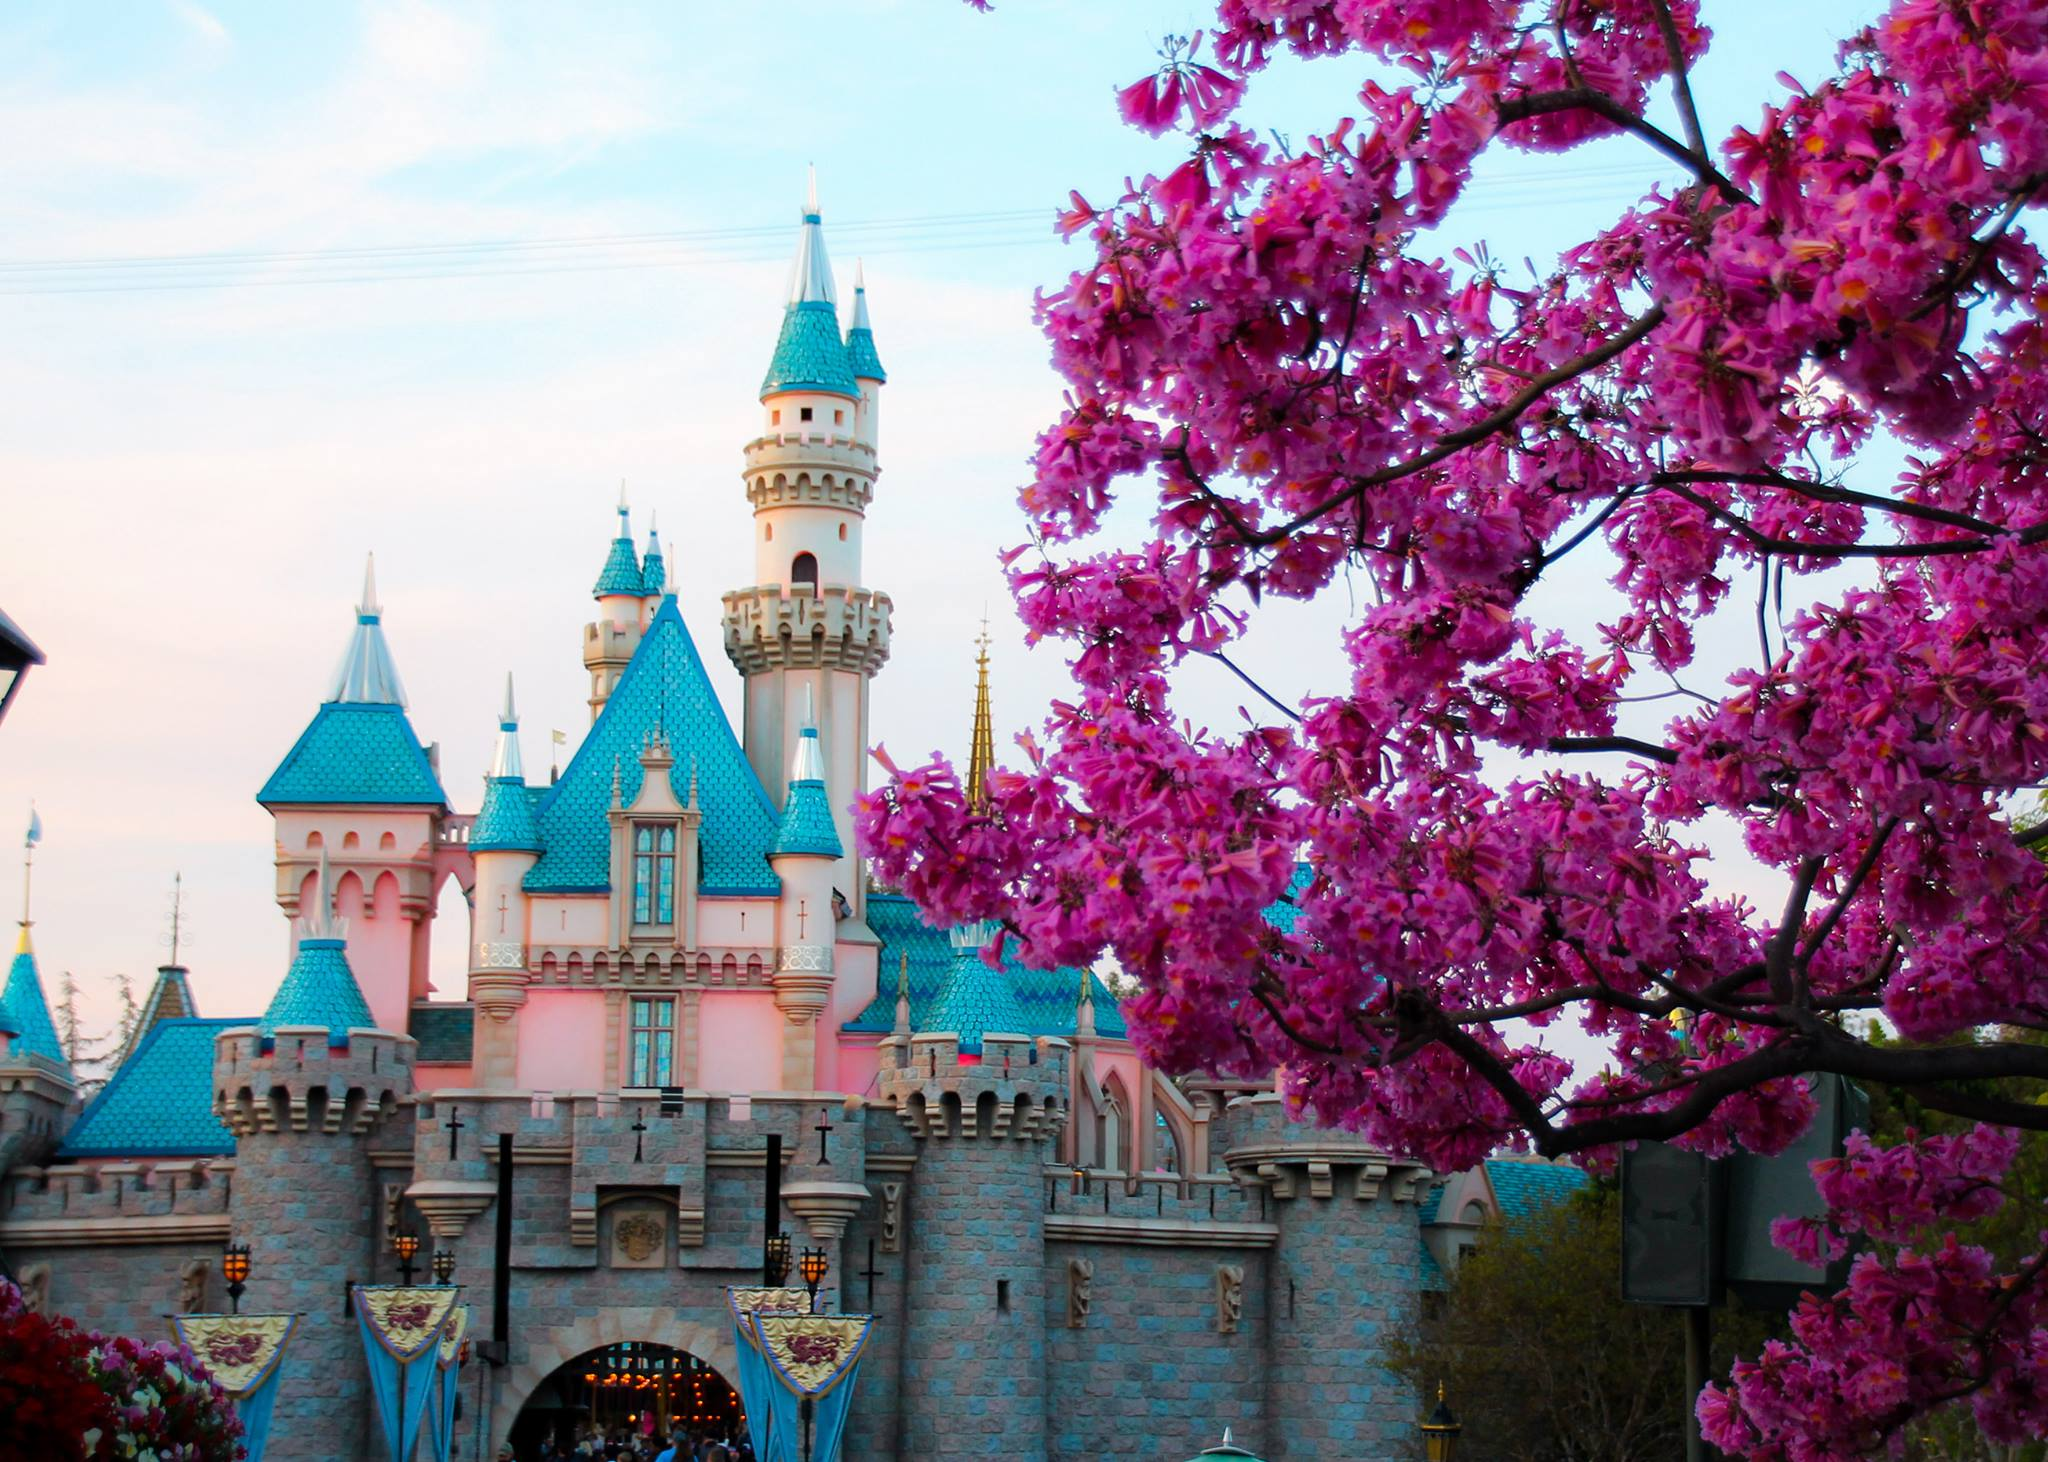 If you're looking for active vacation ideas in Southern California, Disneyland is a great way to get those steps in!!